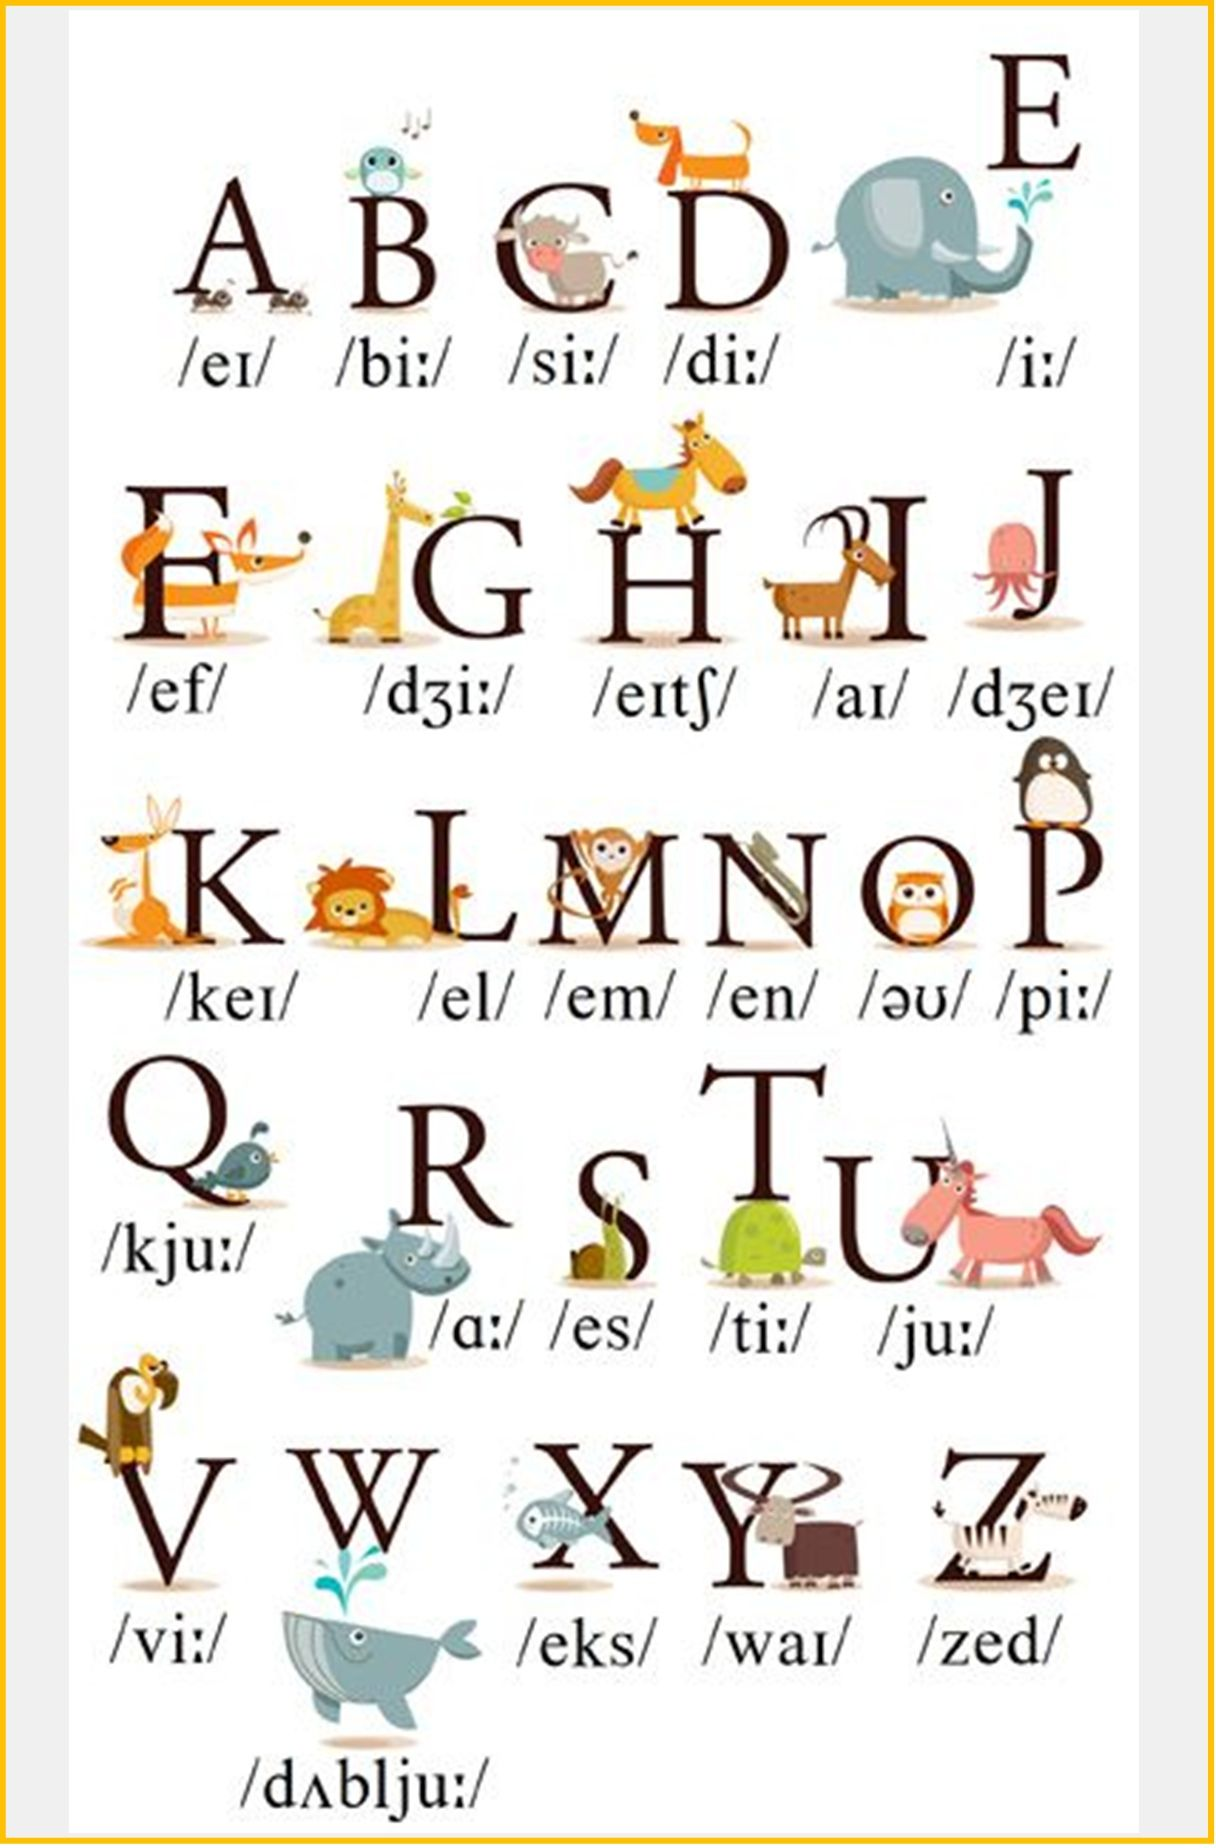 Misha And Funny Stories Is Creating Infographics For Children And Thei Parents Patreon In 2021 English Alphabet English Phonics English Alphabet Pronunciation [ 1848 x 1216 Pixel ]